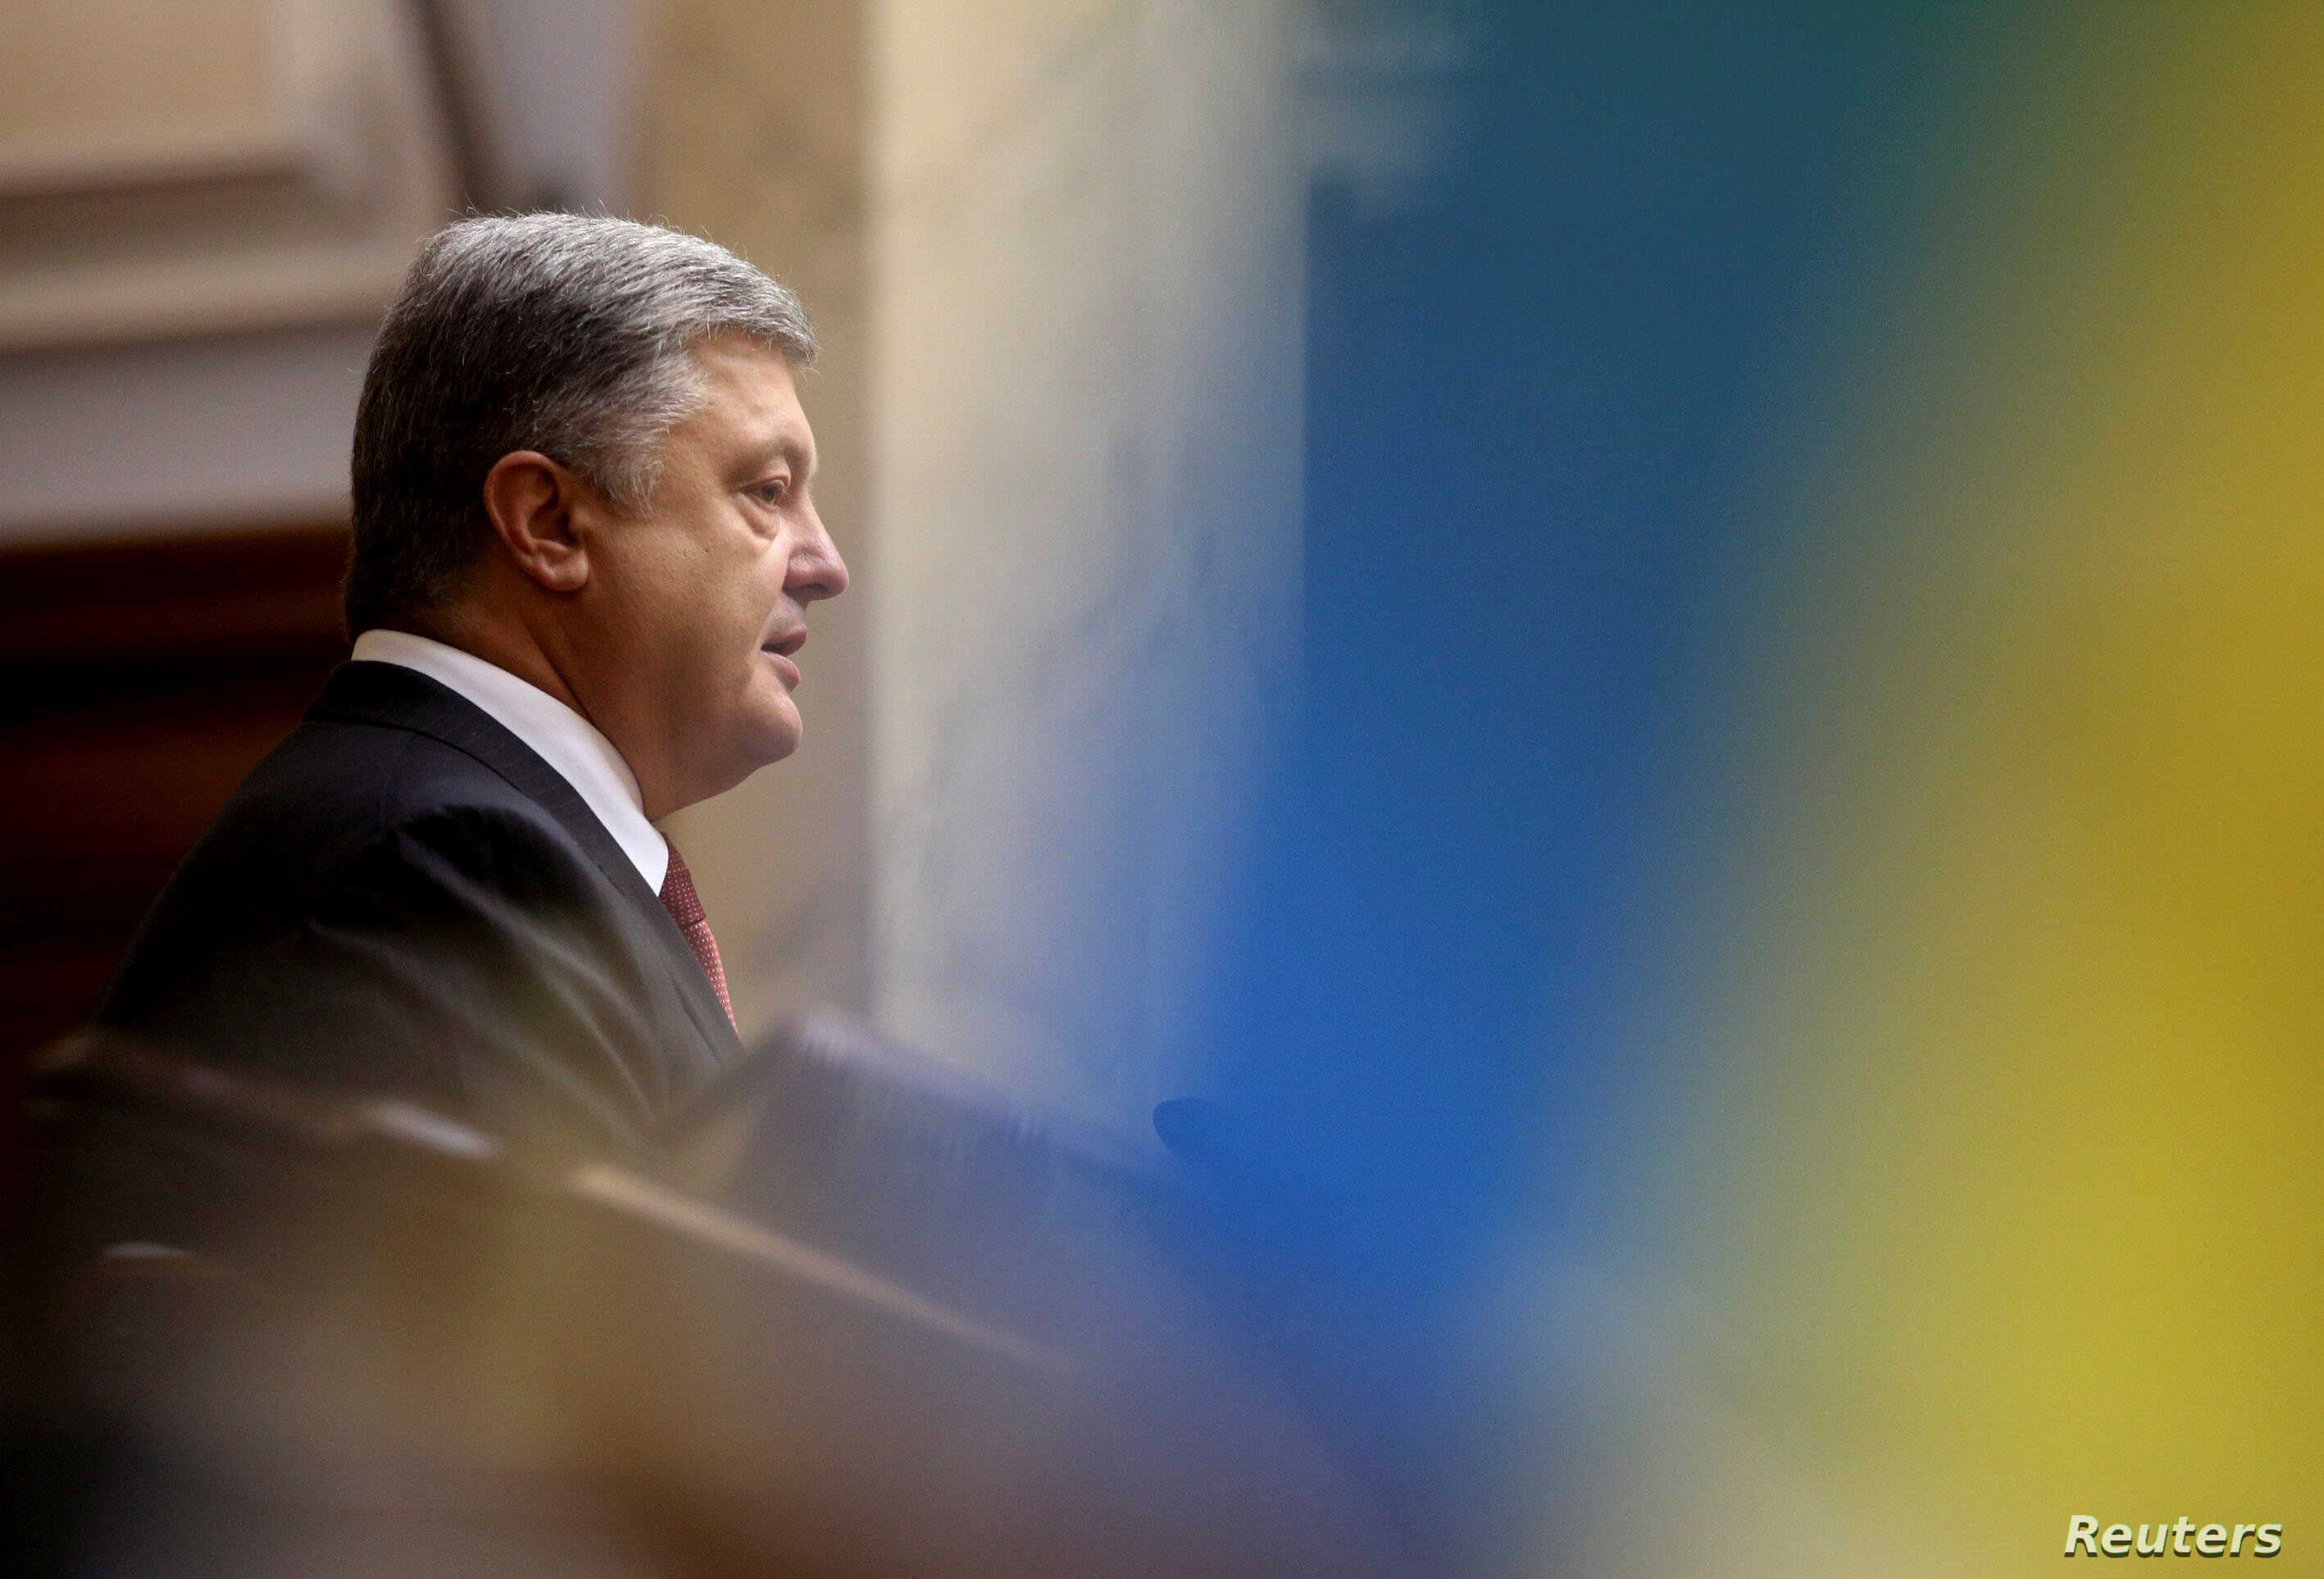 Ukrainian President Petro Poroshenko delivers a speech to parliament in Kyiv, Ukraine, Sept. 7, 2017.